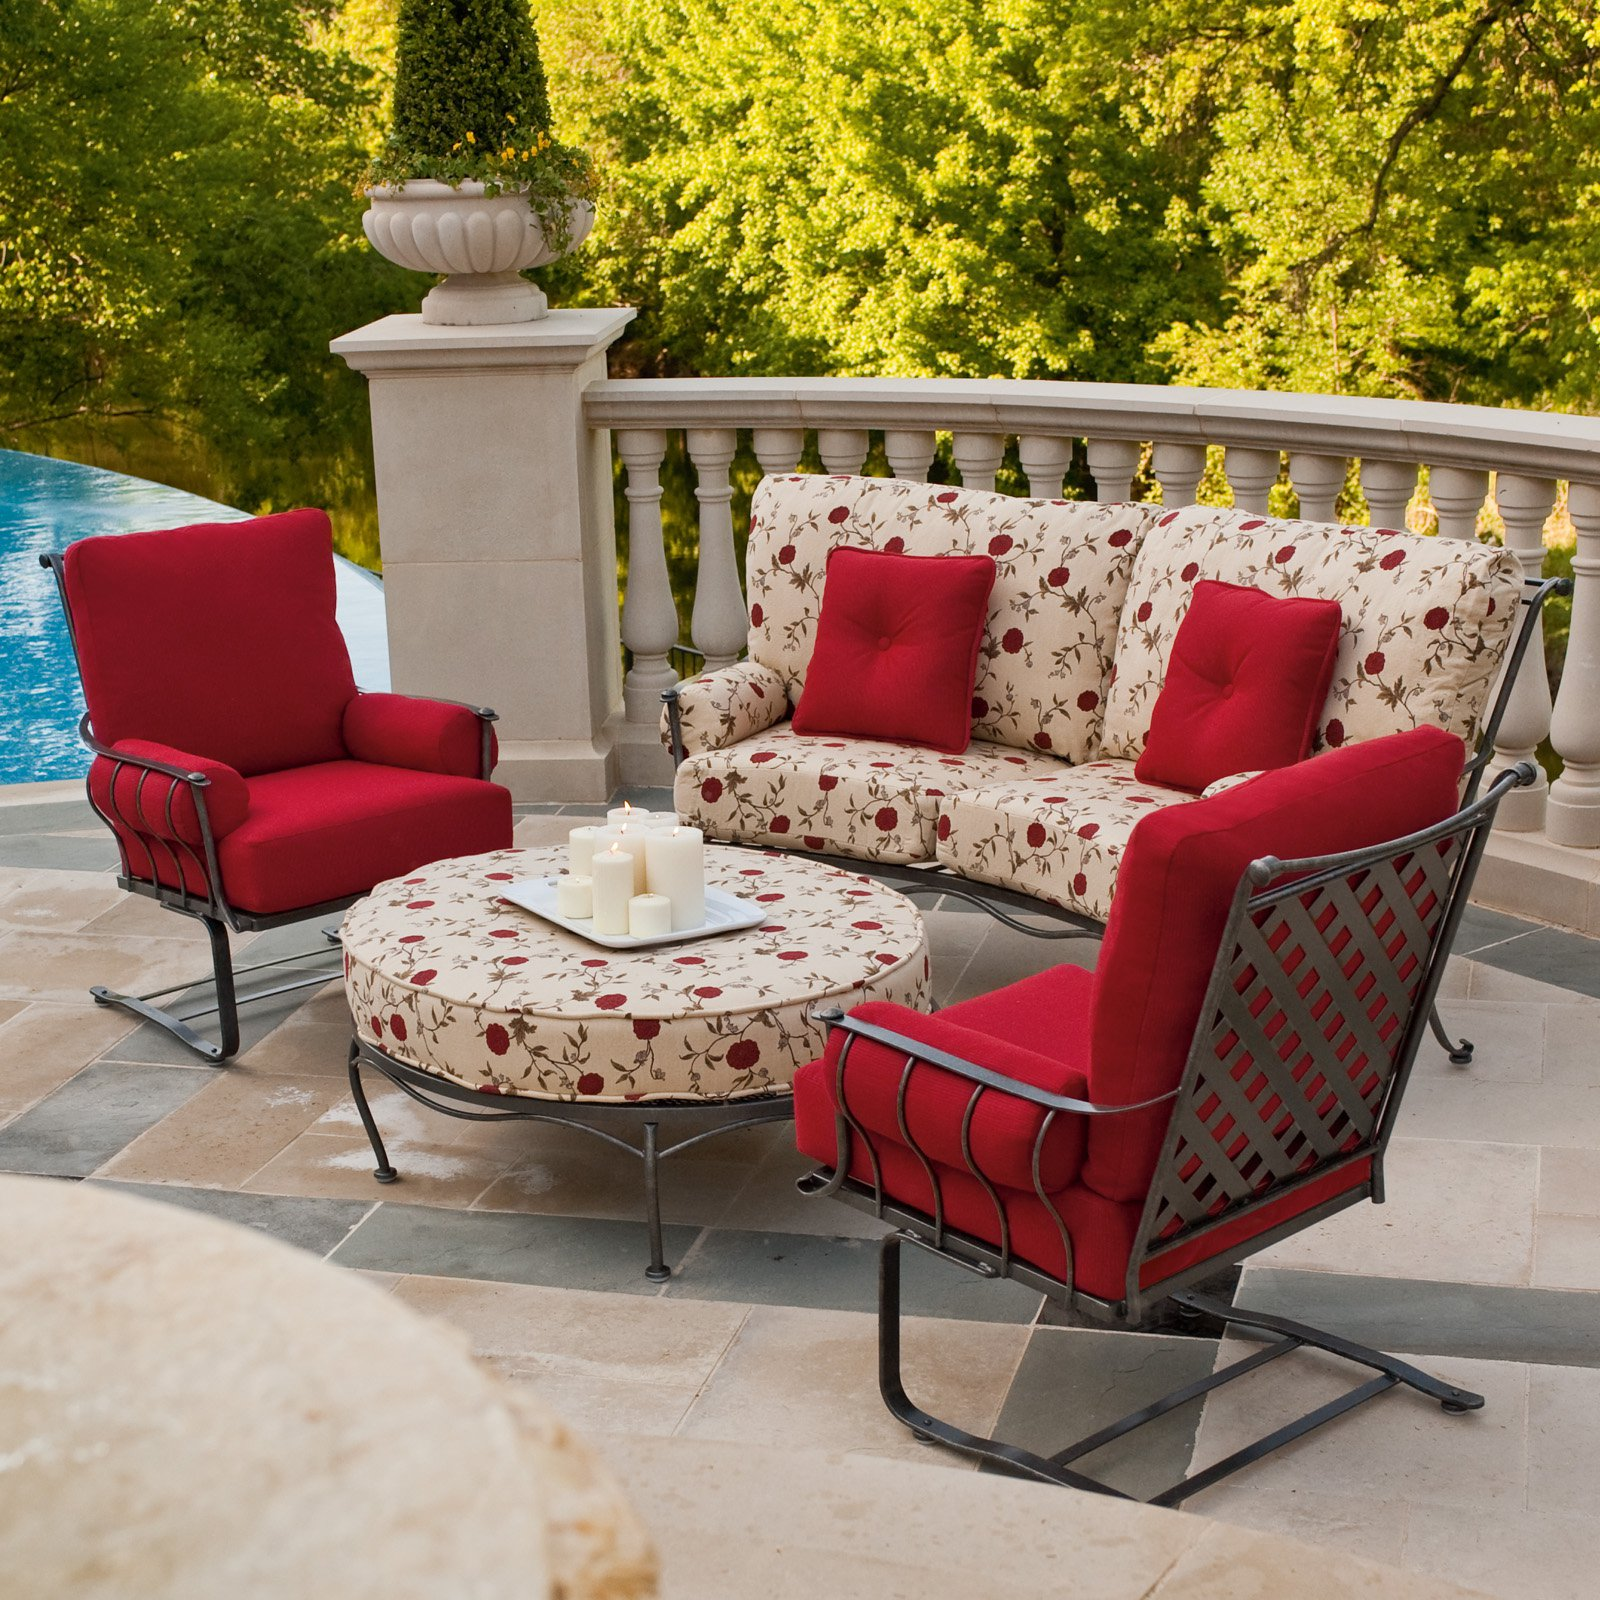 New Patio Conversation Sets